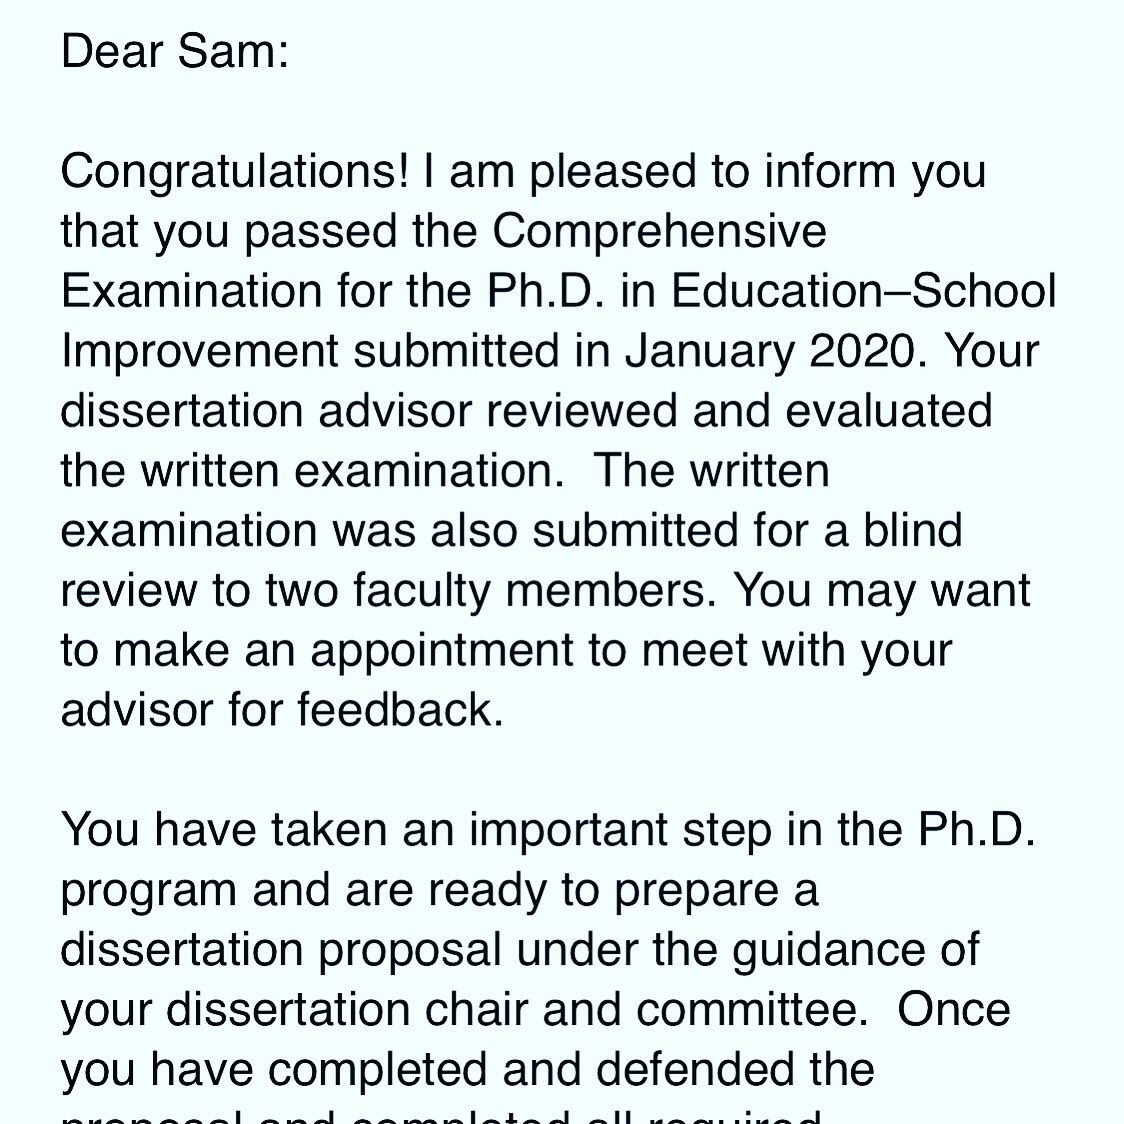 Wanted to share with the Seguin community that I'm one step closer to my PhD in School Improvement! This was great news after a week of stressful contests! @SeguinISD @SeguinFineArts @AJBriesemeister #AlmostDoctor #PhDJourney <br>http://pic.twitter.com/PuoLT1tmEf